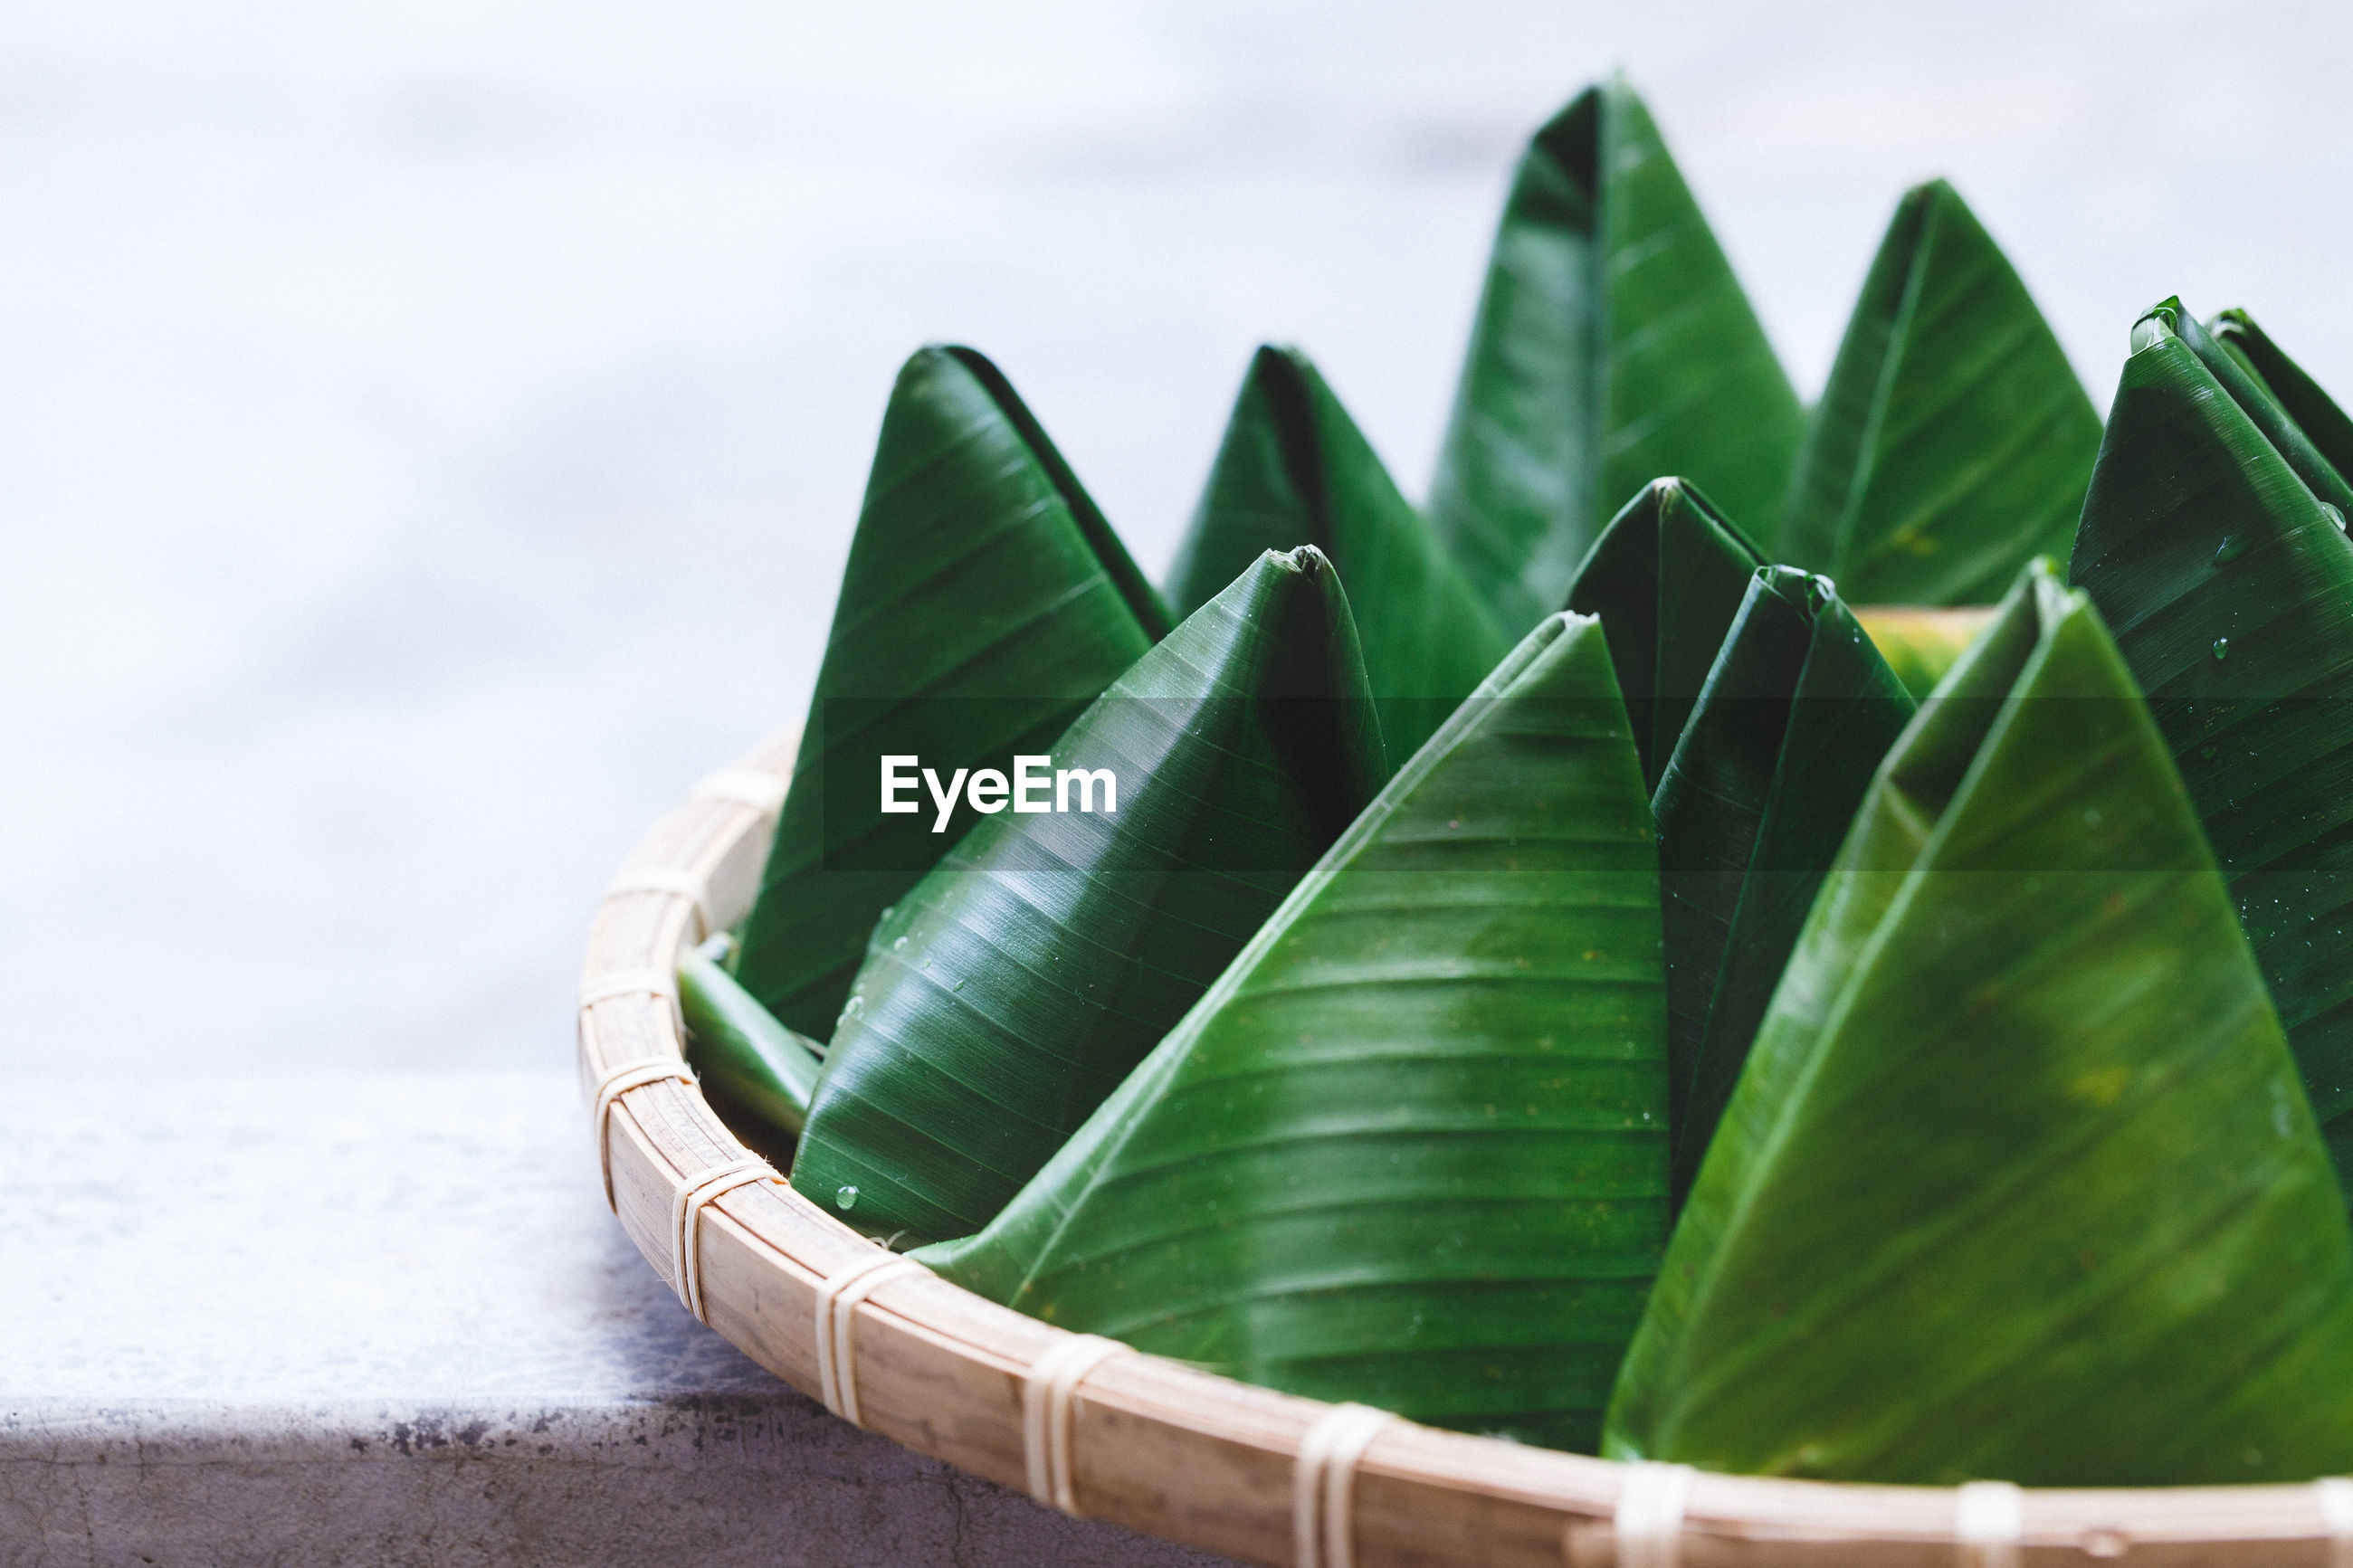 Close-up of sweet food wrapped in banana leaves in containers at table